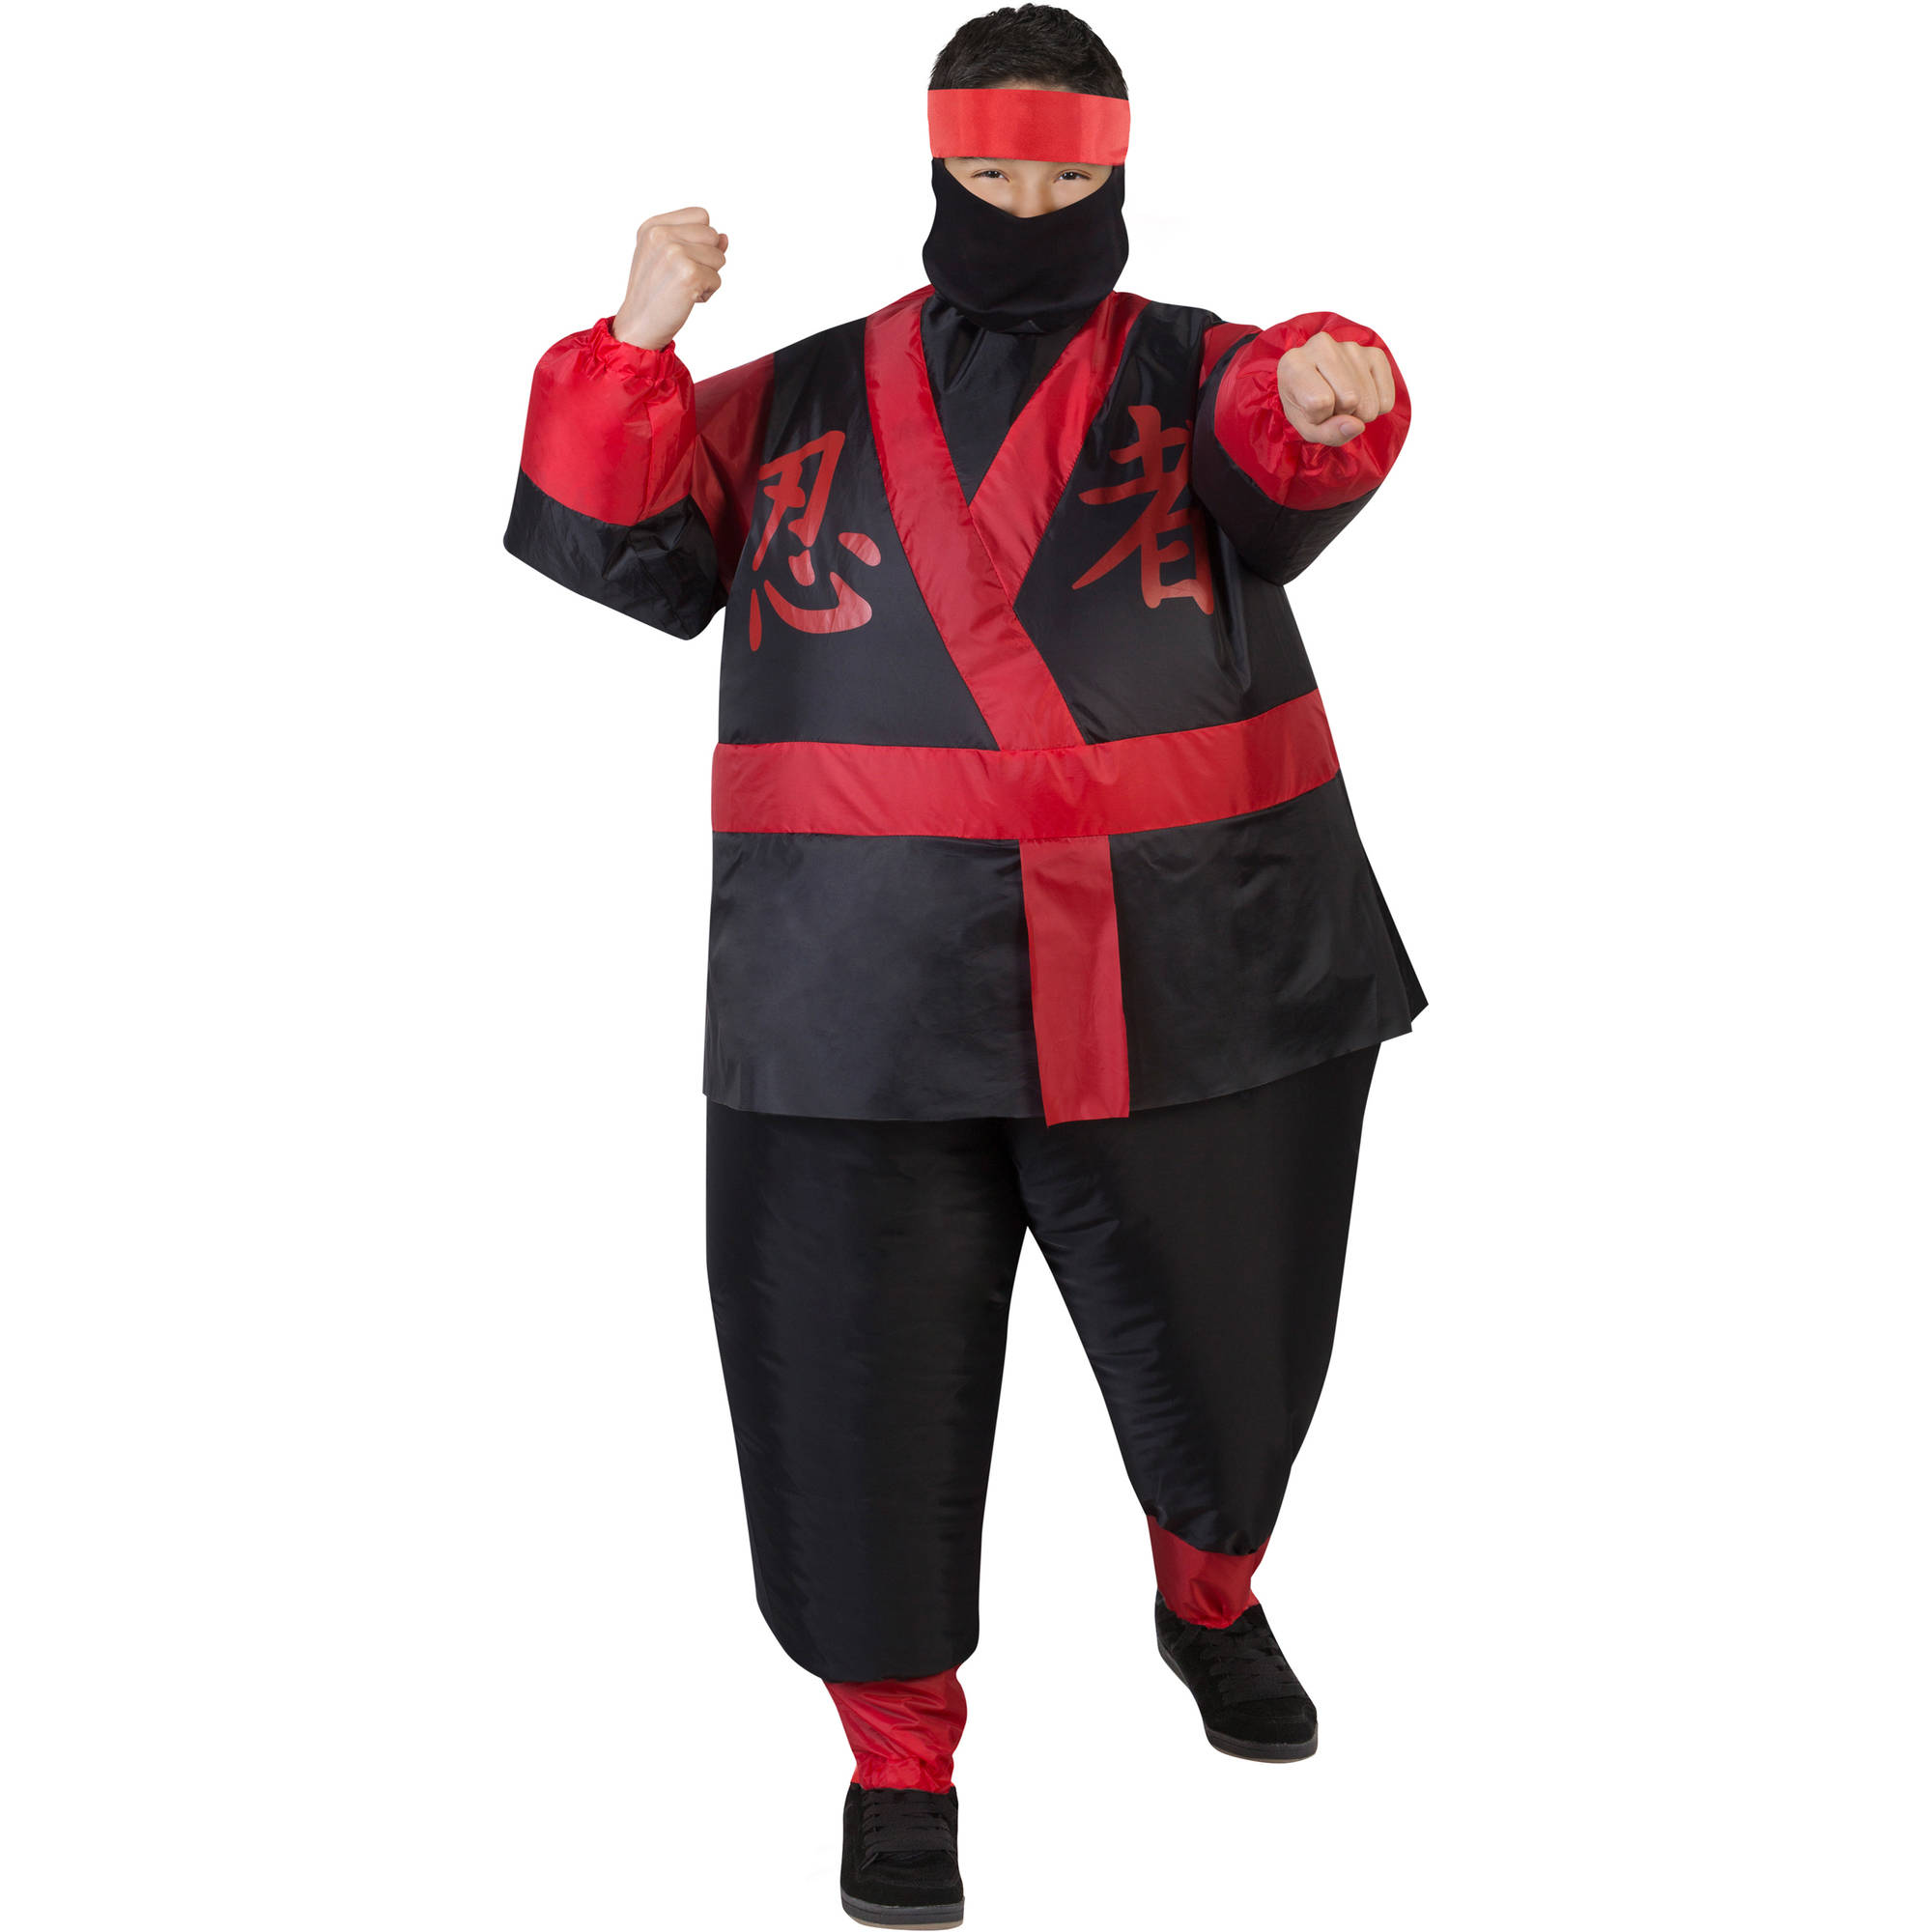 Ninja Inflatable Child Halloween Dress Up / Role Play Costume